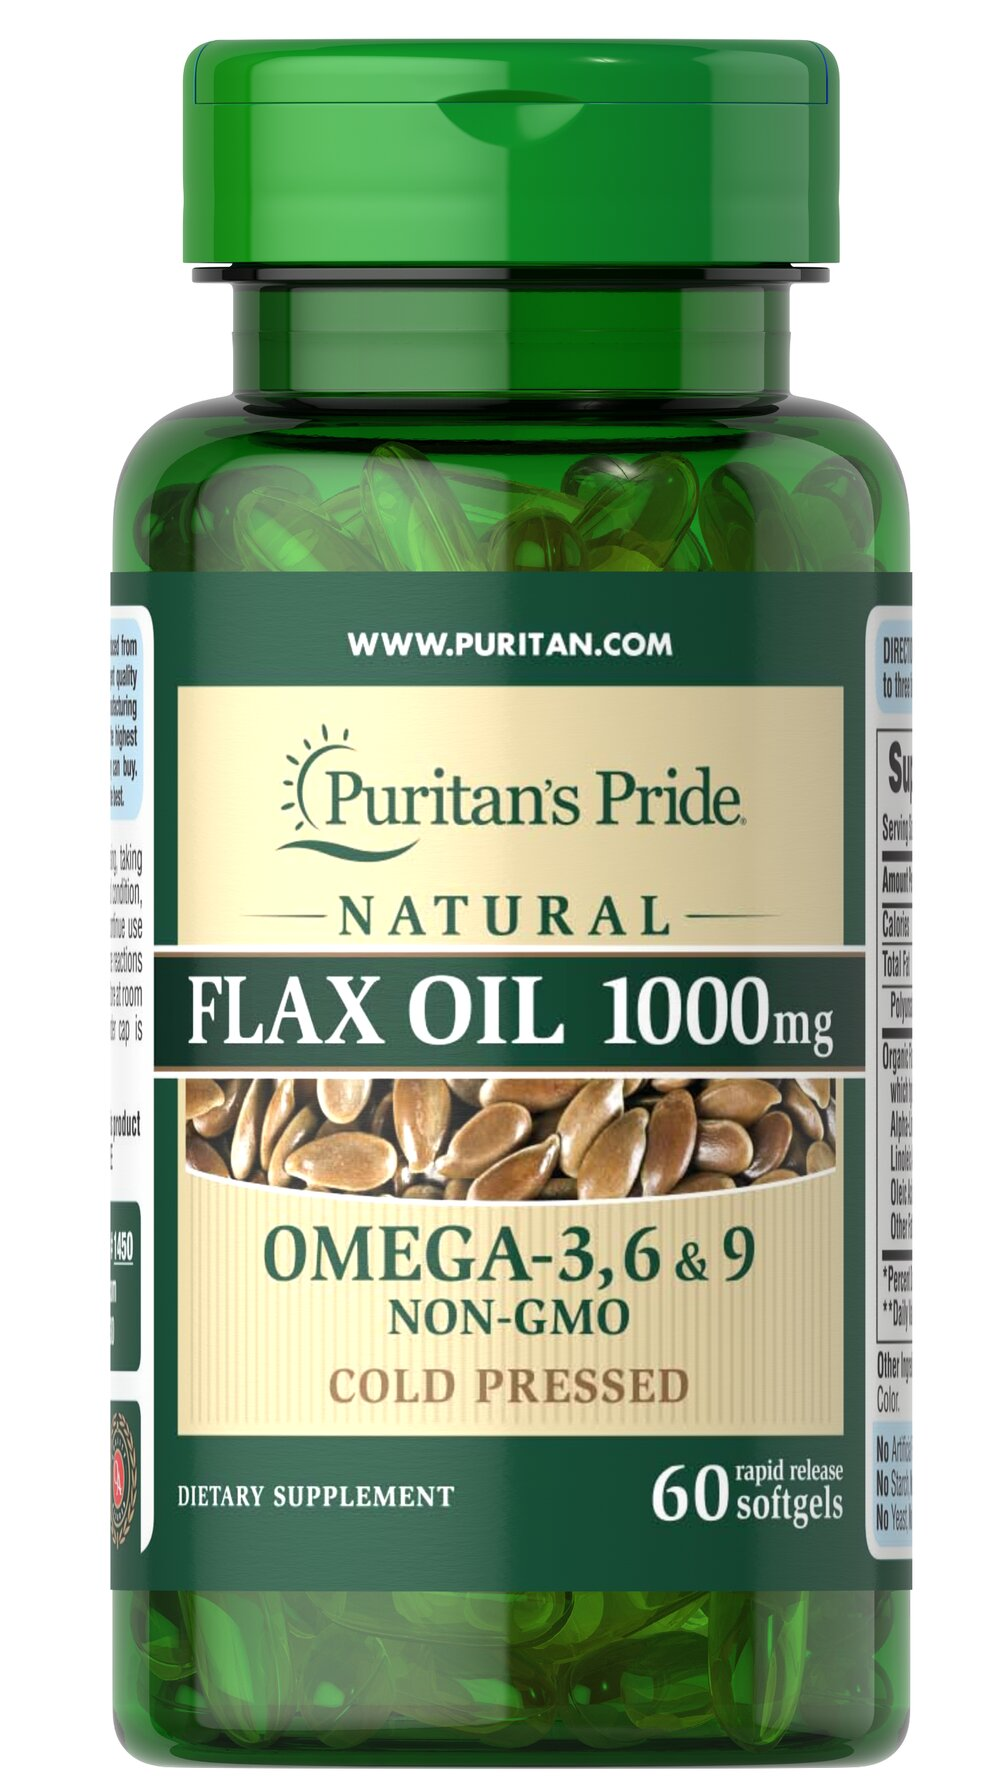 Non-GMO Natural Flax Oil 1000 mg Thumbnail Alternate Bottle View